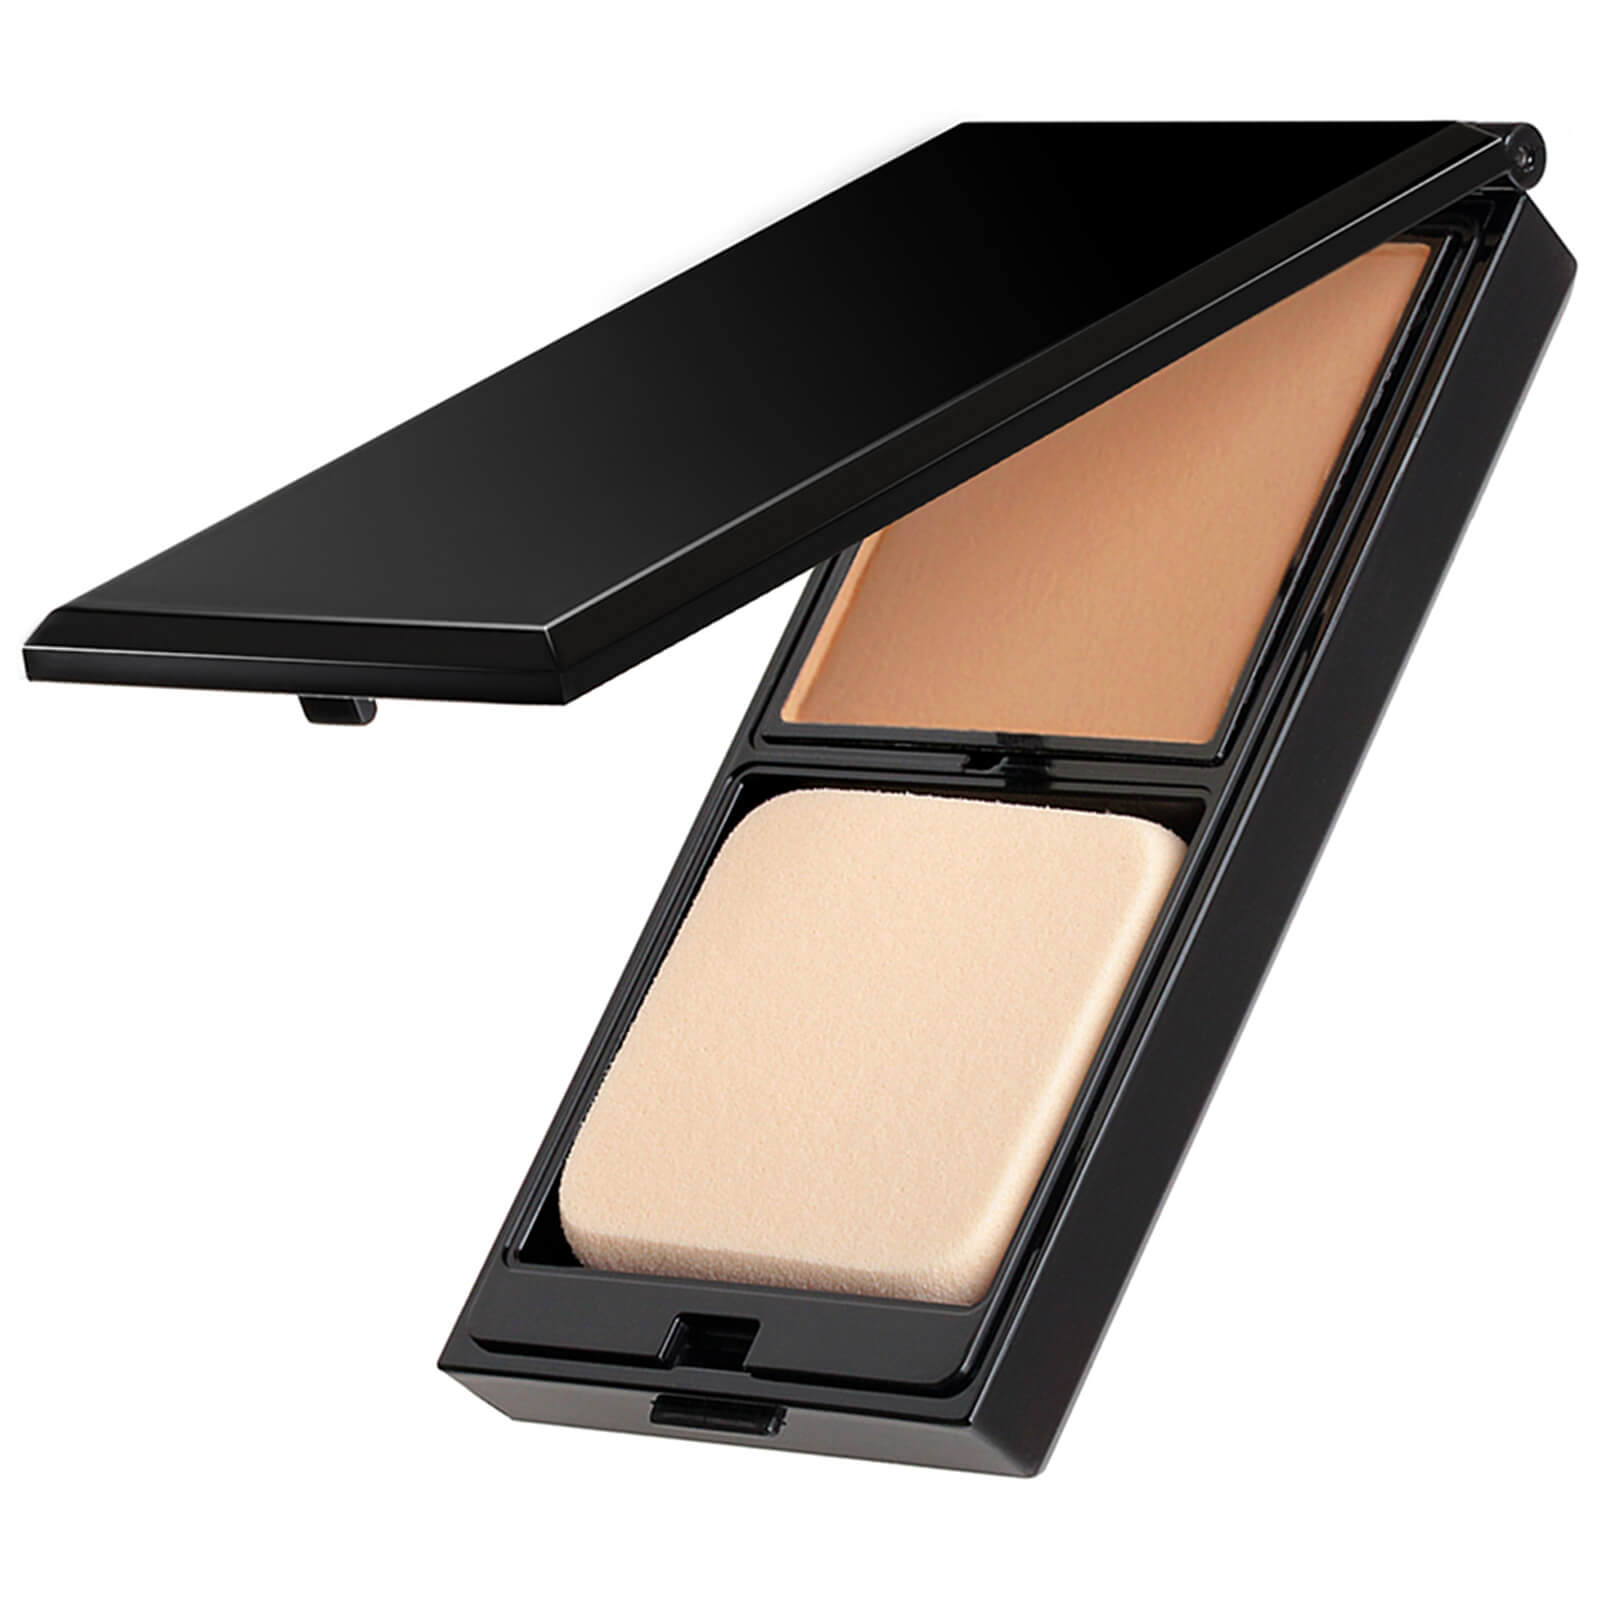 Serge Lutens Compact Foundation Teint si Fin Refill 8g (Various Shades) - I40